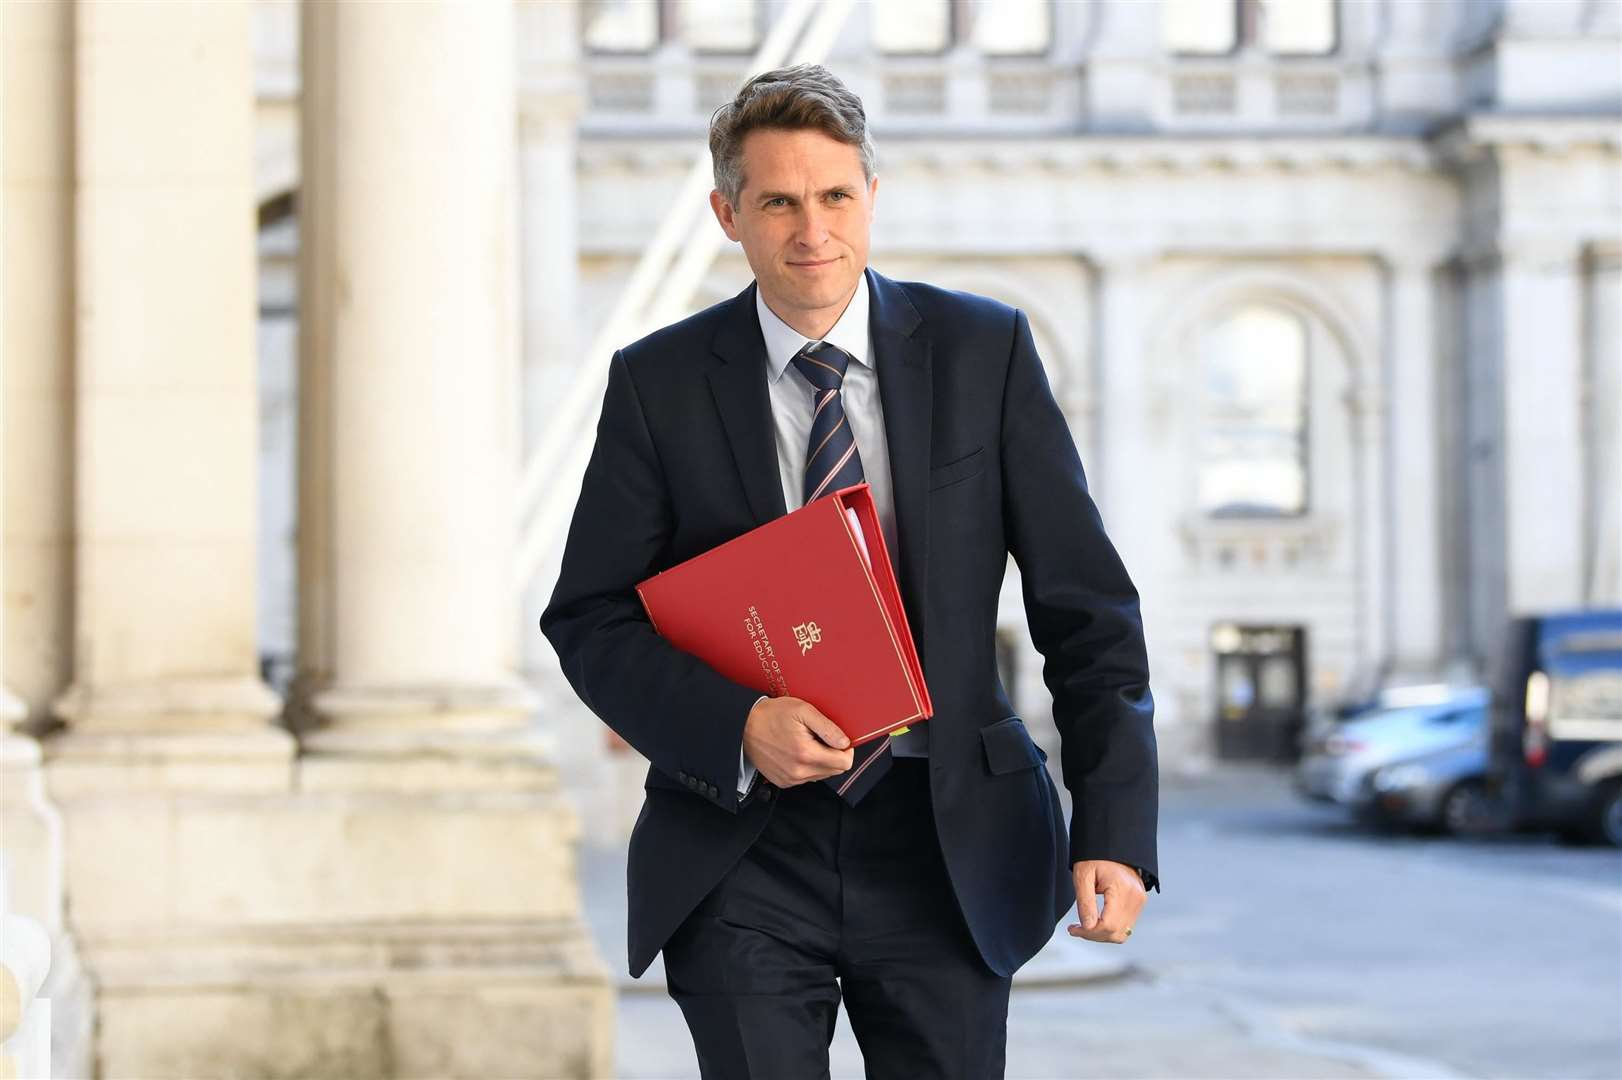 Education secretary Gavin Williamson. Picture: Stefan Rousseau/PA